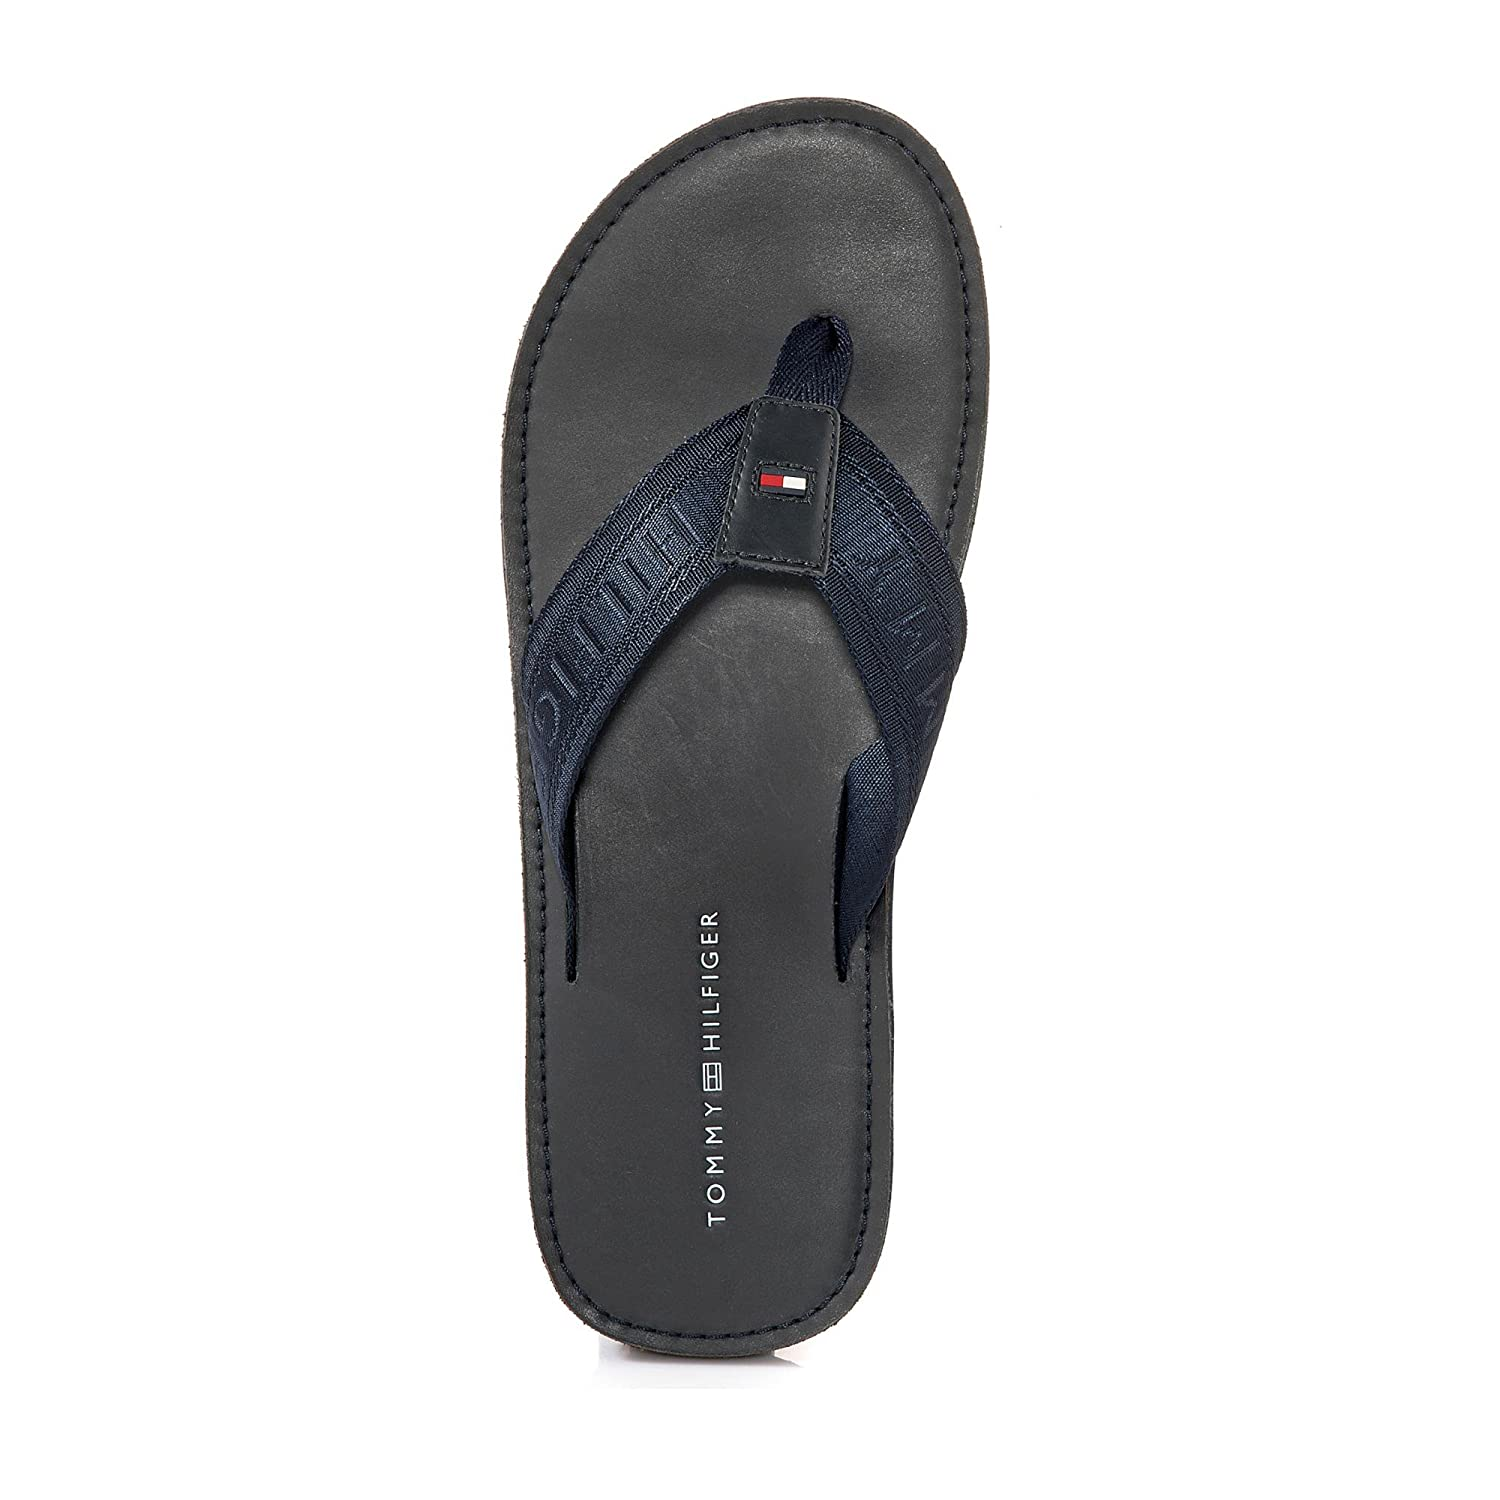 ce63ca2c2011 Tommy Hilfiger Jaquard TH Leather Beach Sandal - Midnight (Navy) Mens  Sandals 41 EU  Amazon.co.uk  Shoes   Bags